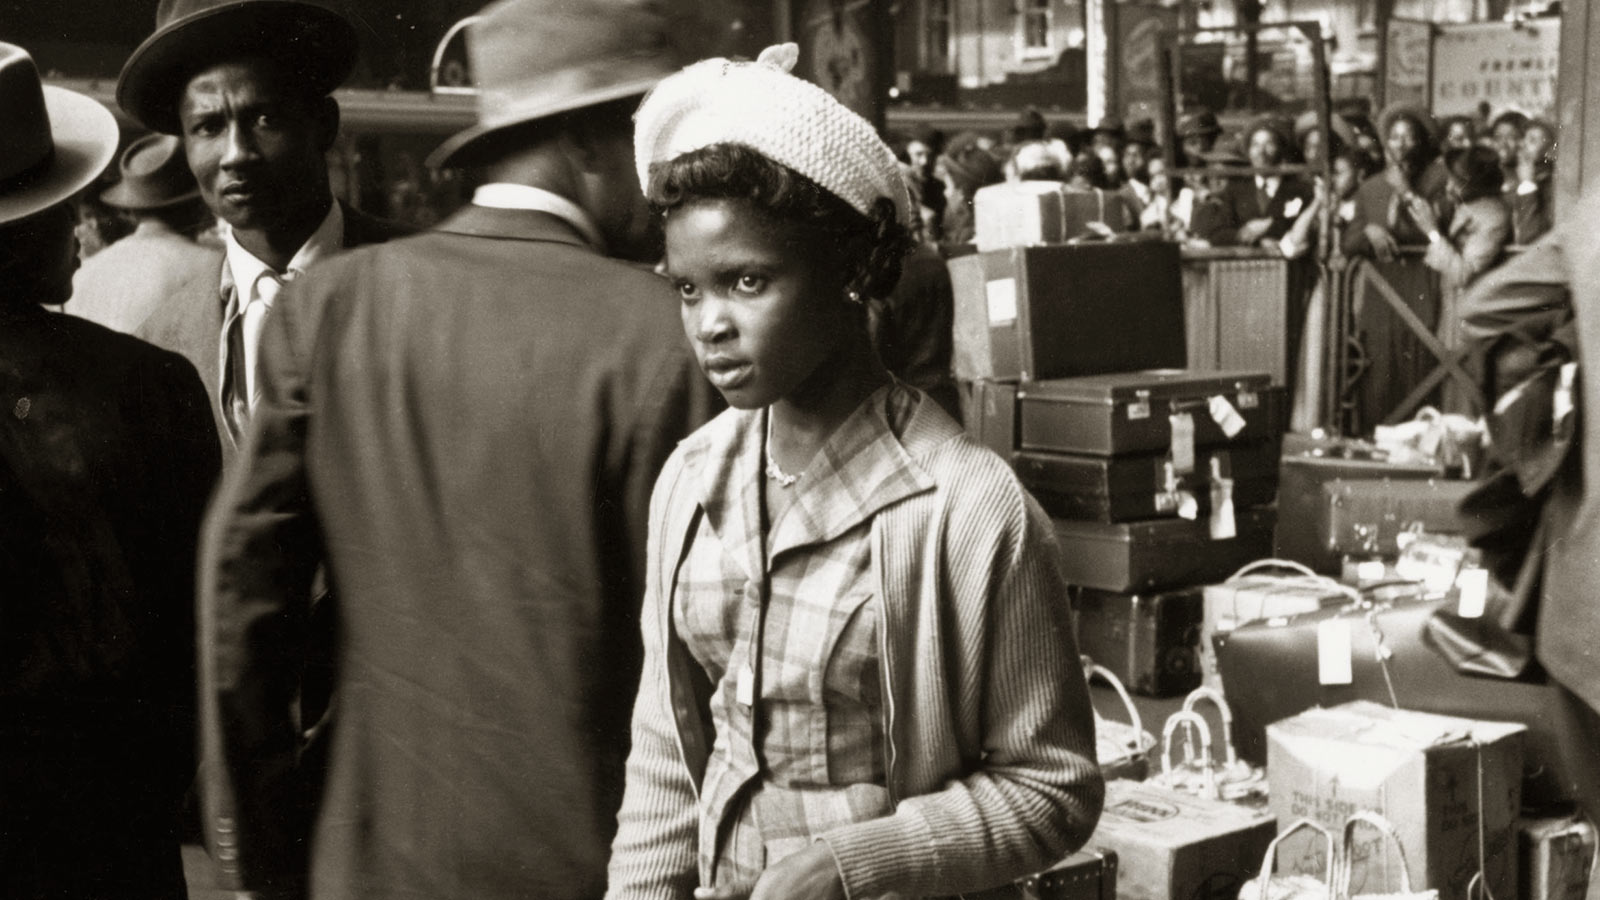 Photograph showing people arriving at London's Victoria Station from the Carribean via Southampton, mid 20th century